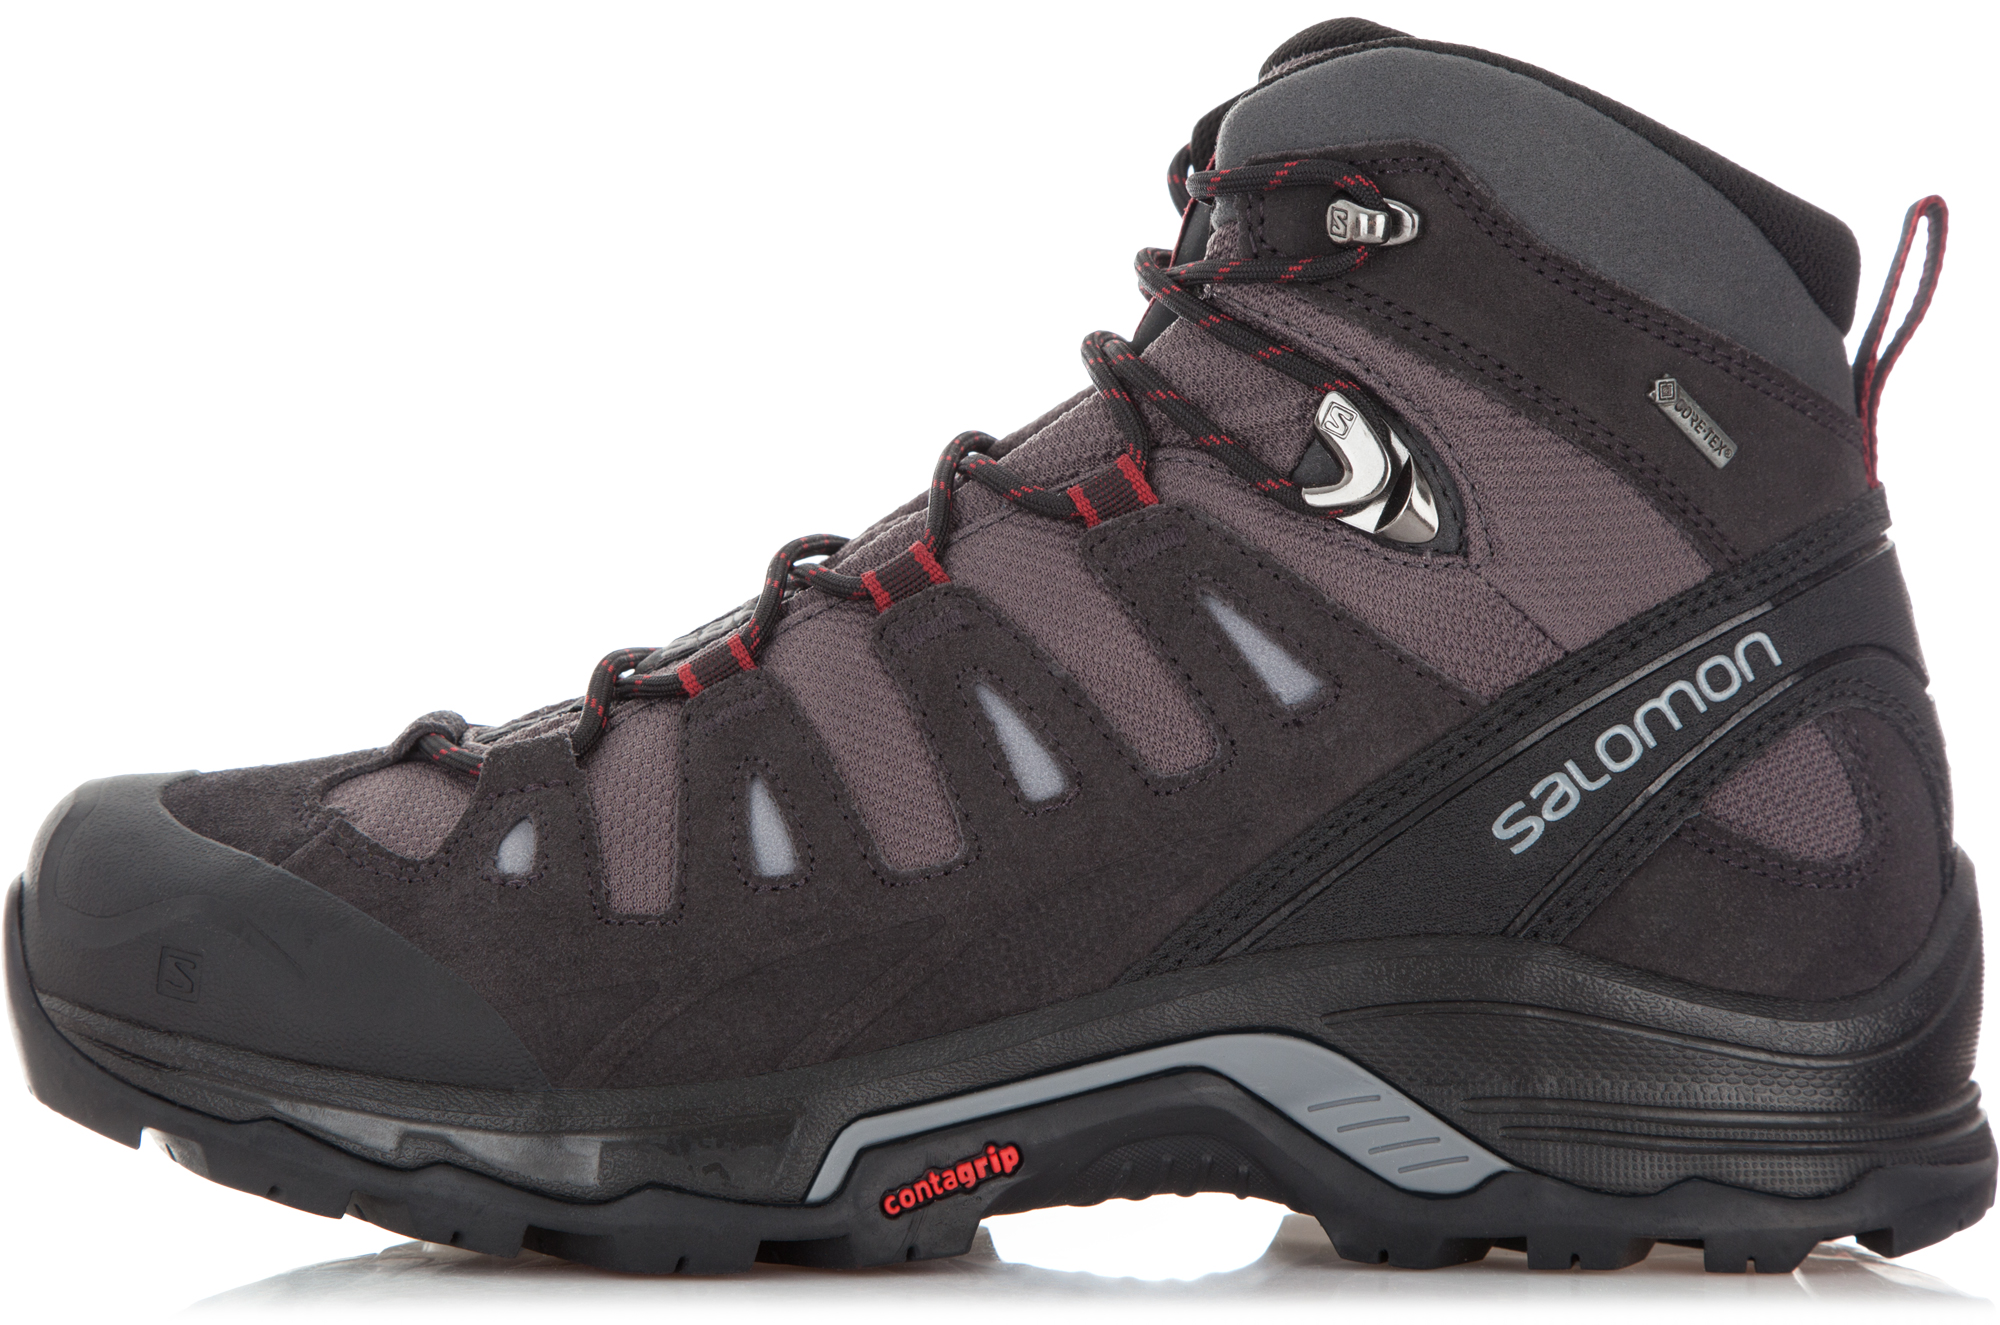 Salomon Ботинки мужские Salomon Quest Prime GTX salomon salomon x ultra mid 2 gtx женские